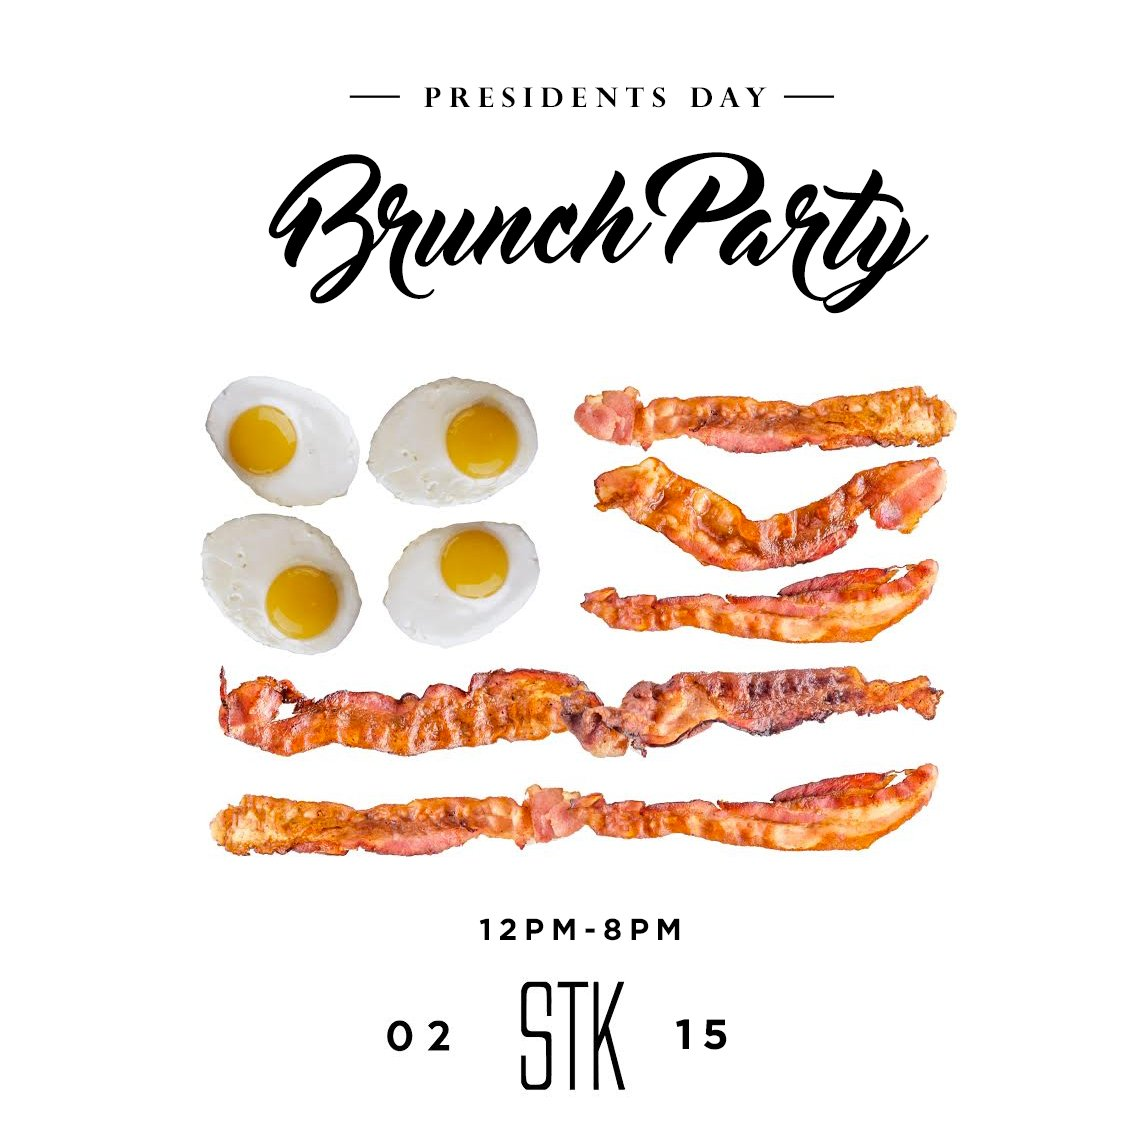 2/15 The Presidents Day Party at STK 12-8pm |  Food, Music & Brunch | RSVP & Table RSVP: https://t.co/7D0UrLkmSV https://t.co/YufIJefvvI